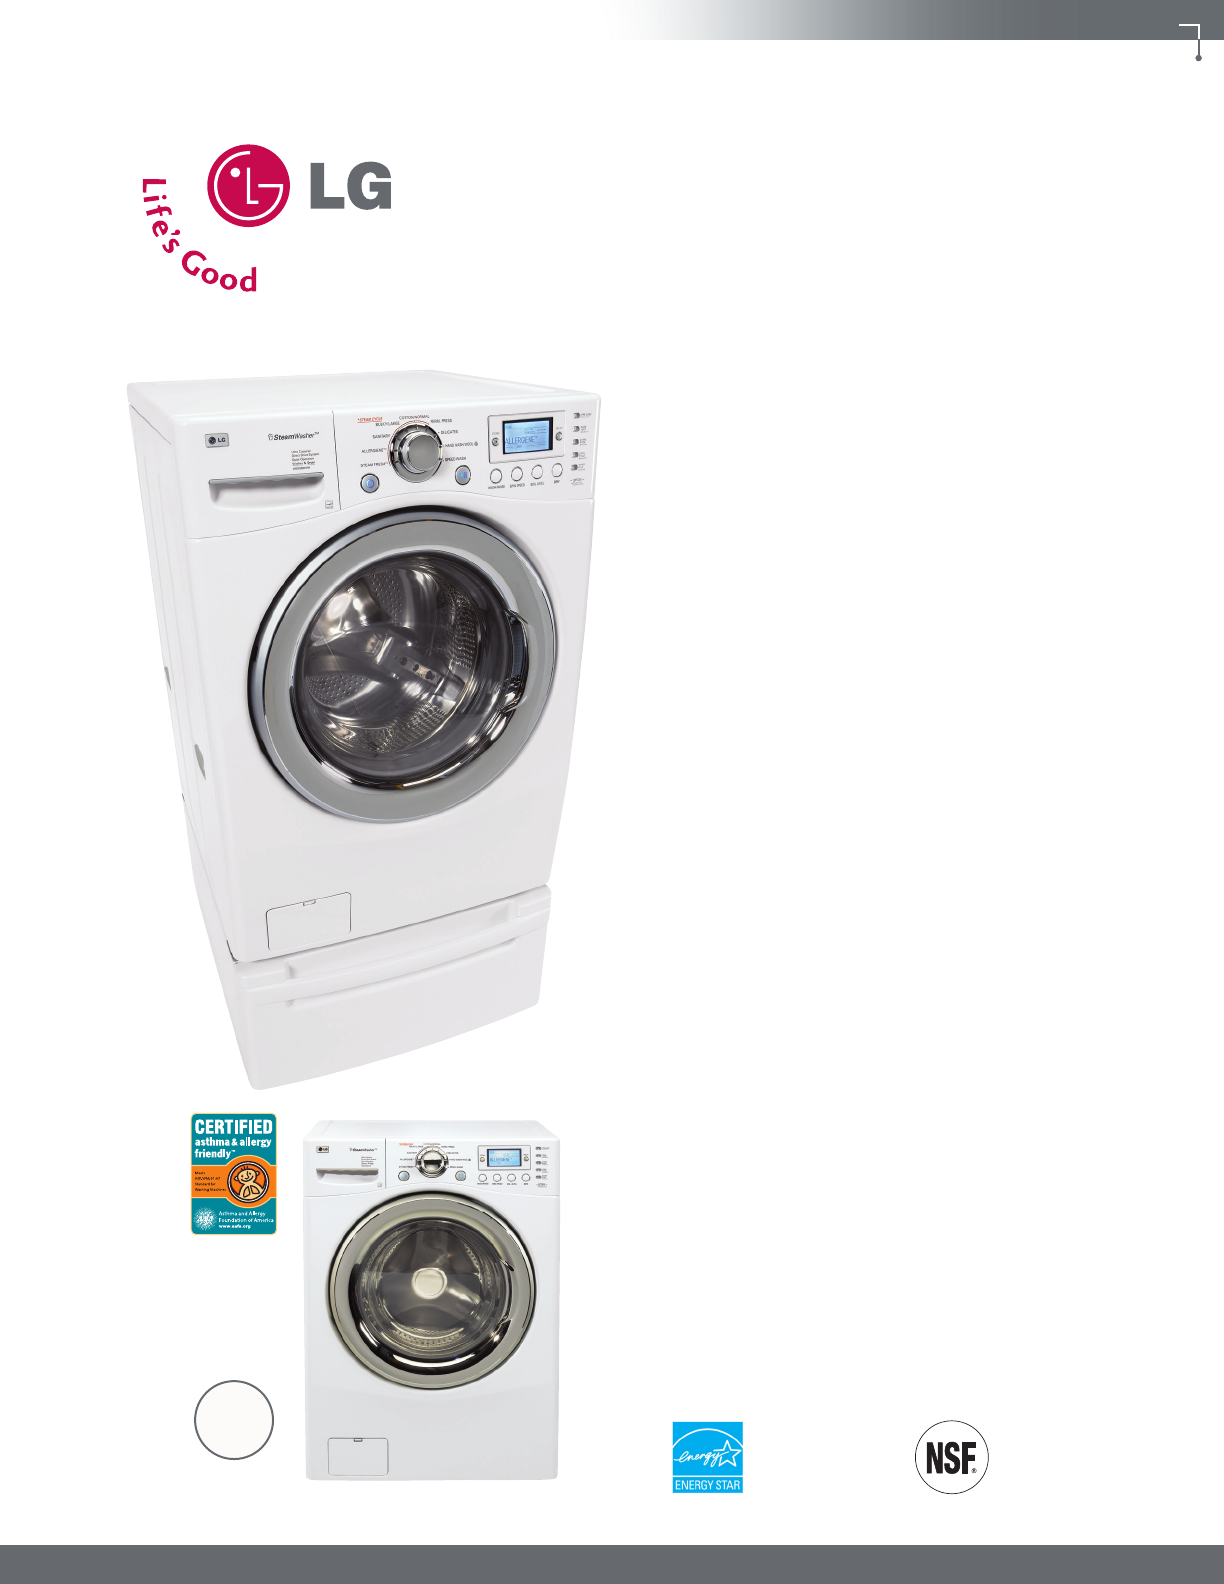 Lg Washer Dryer Instruction Manuals The Legacy Of